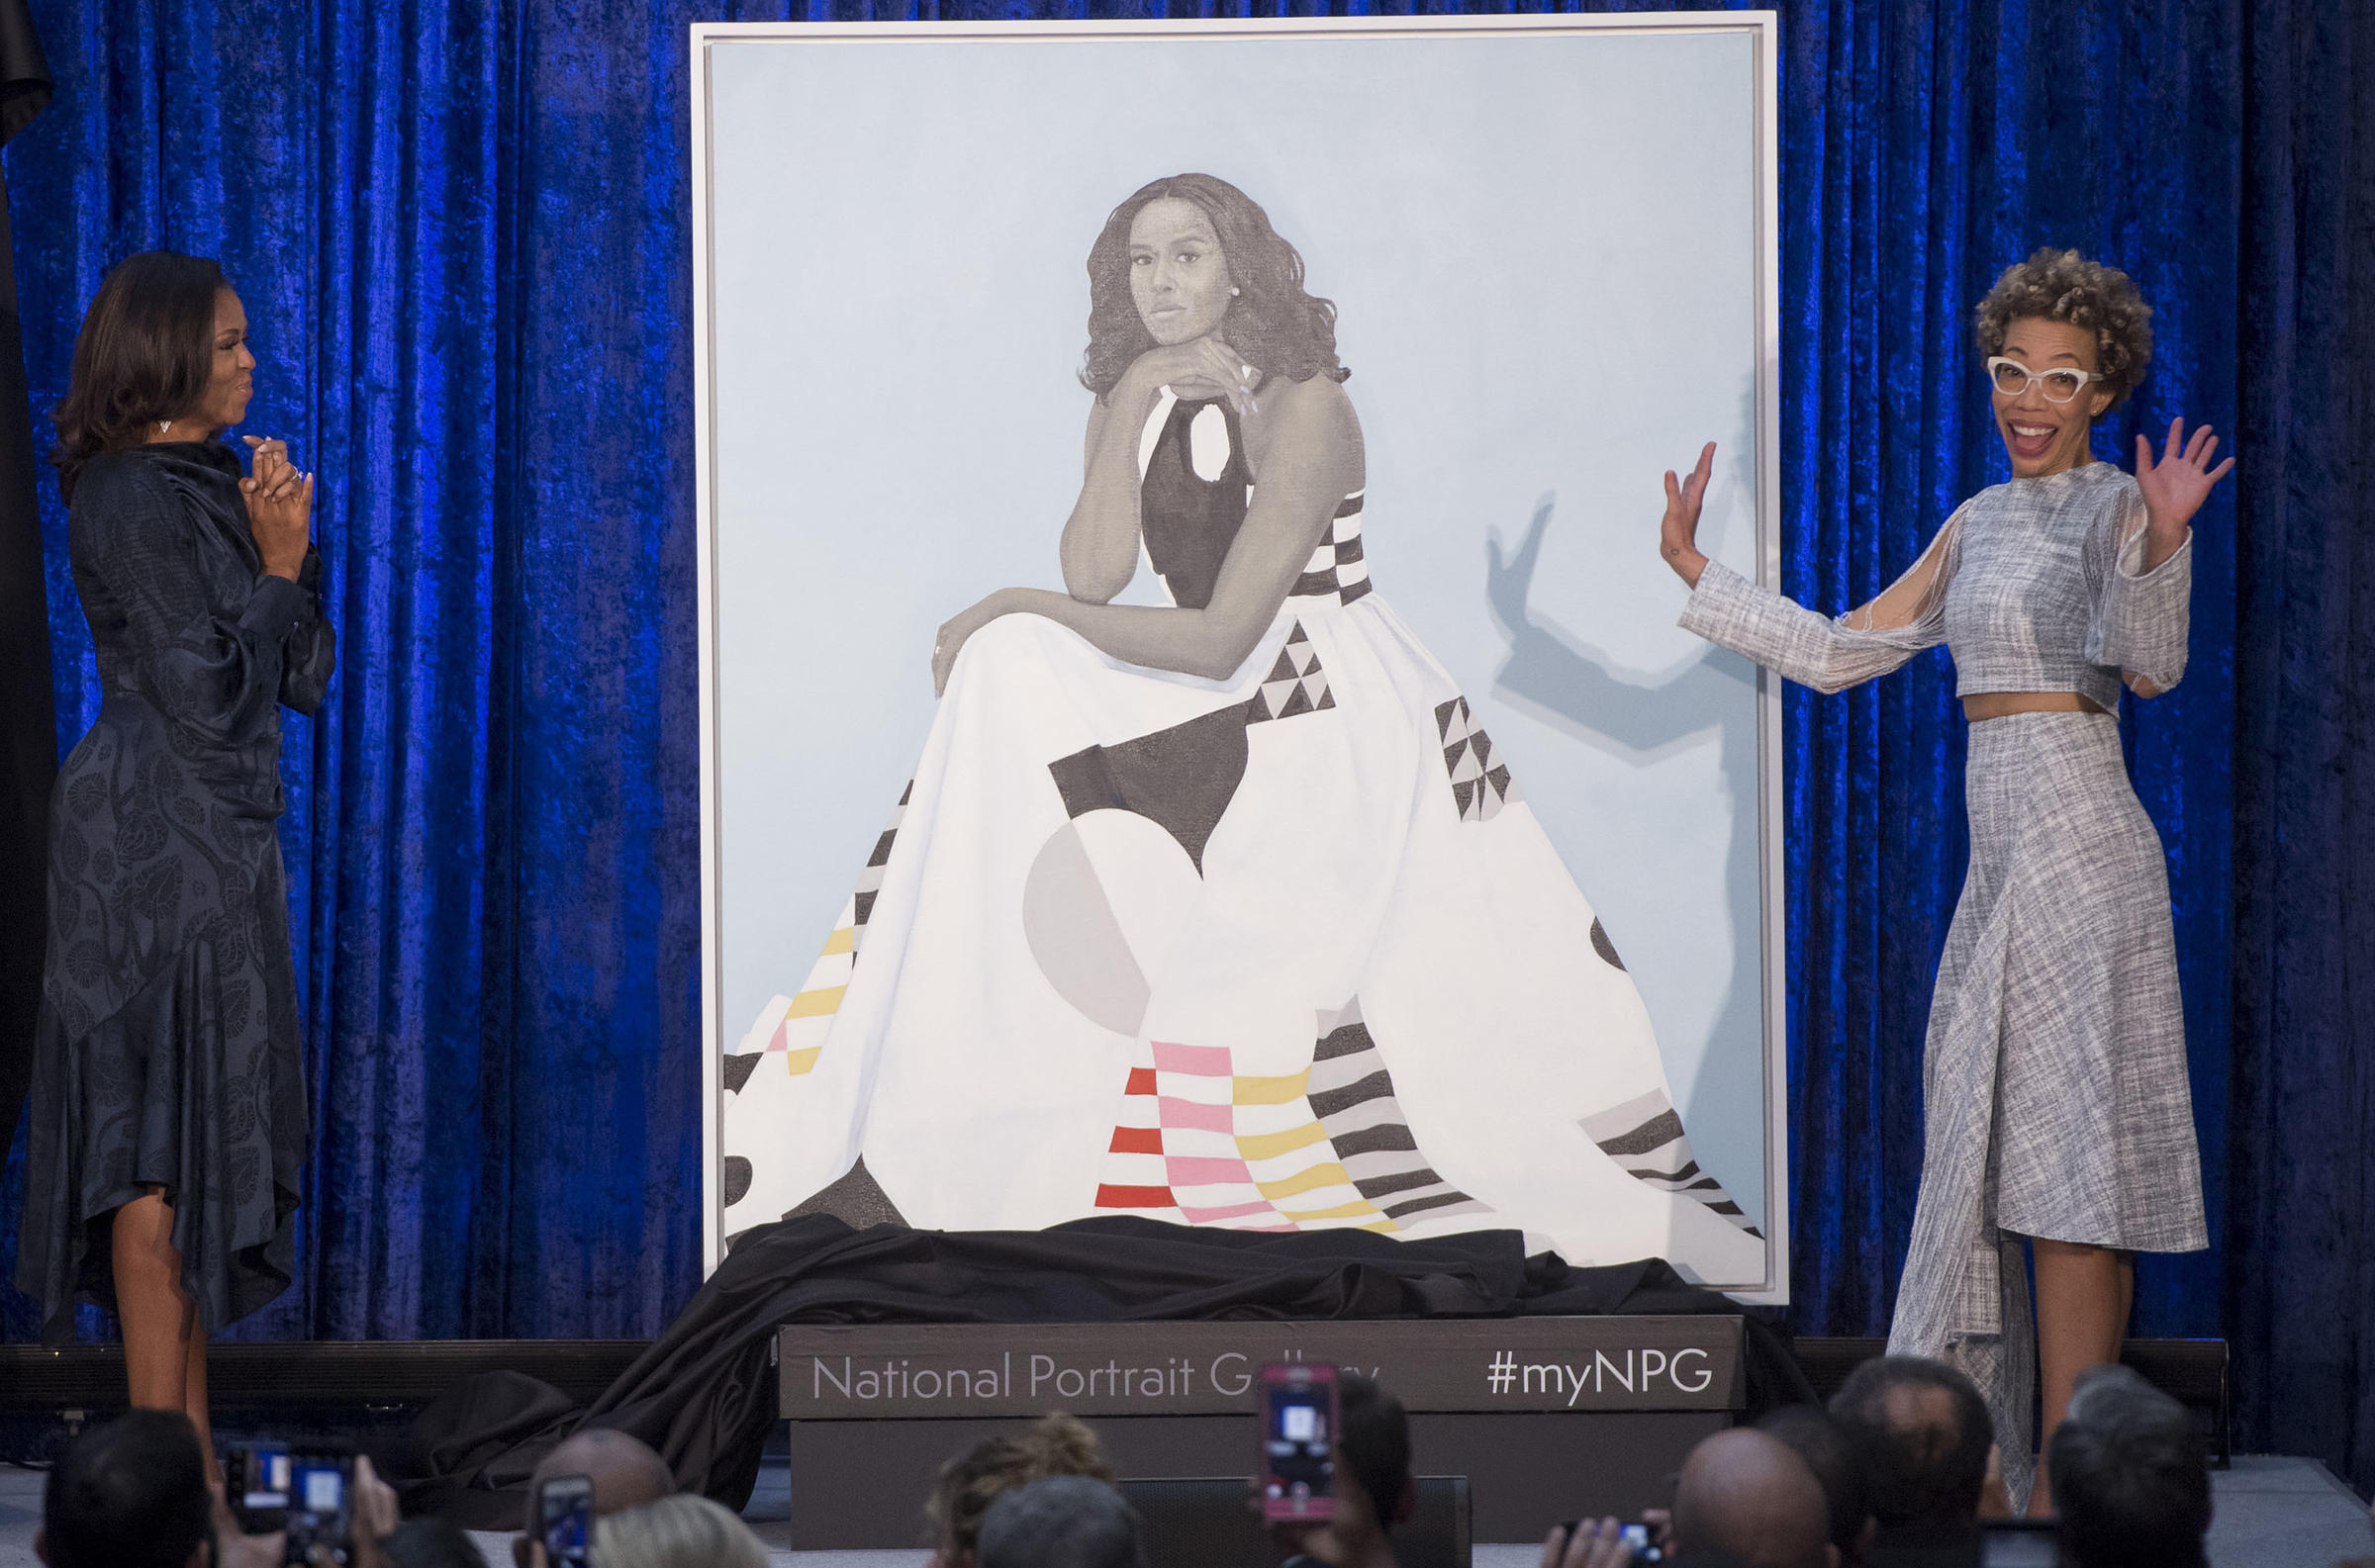 Former First Lady Michelle Obama and artist Amy Sherald unveil Mrs. Obama's portrait at the Smithsonian's National Portrait